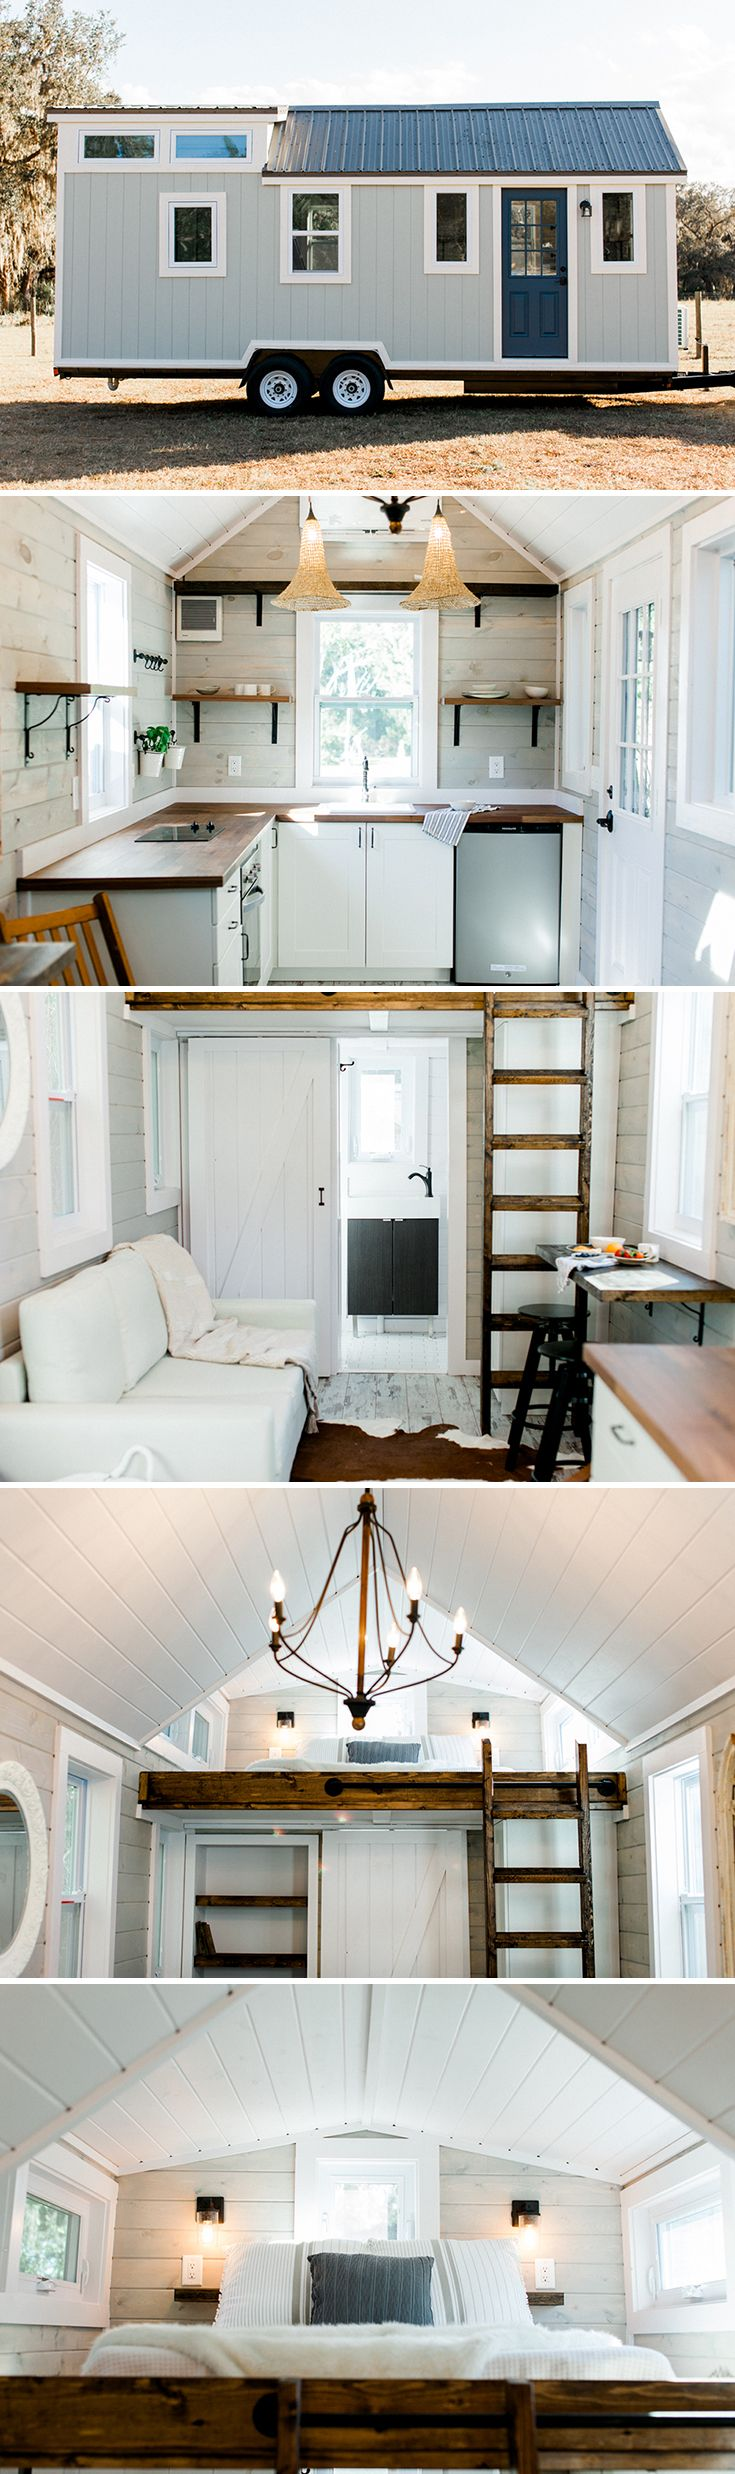 Tiny Marta by Sanctuary Tiny Homes | Bright, Tiny houses and Interiors